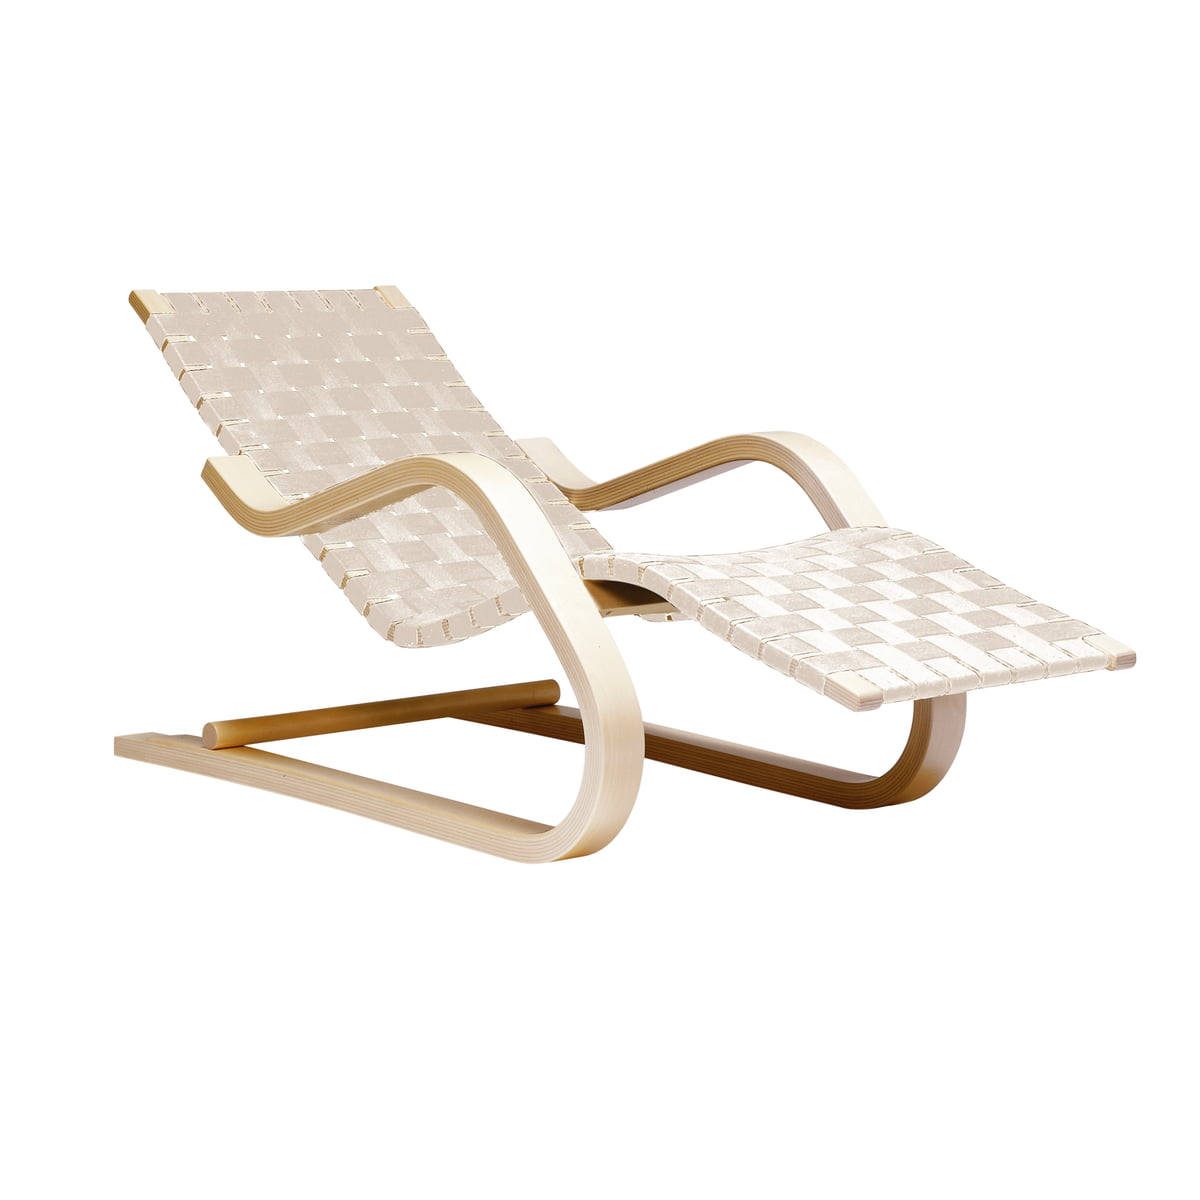 Lounge chair 43 by artek connox shop for Aalto chaise lounge